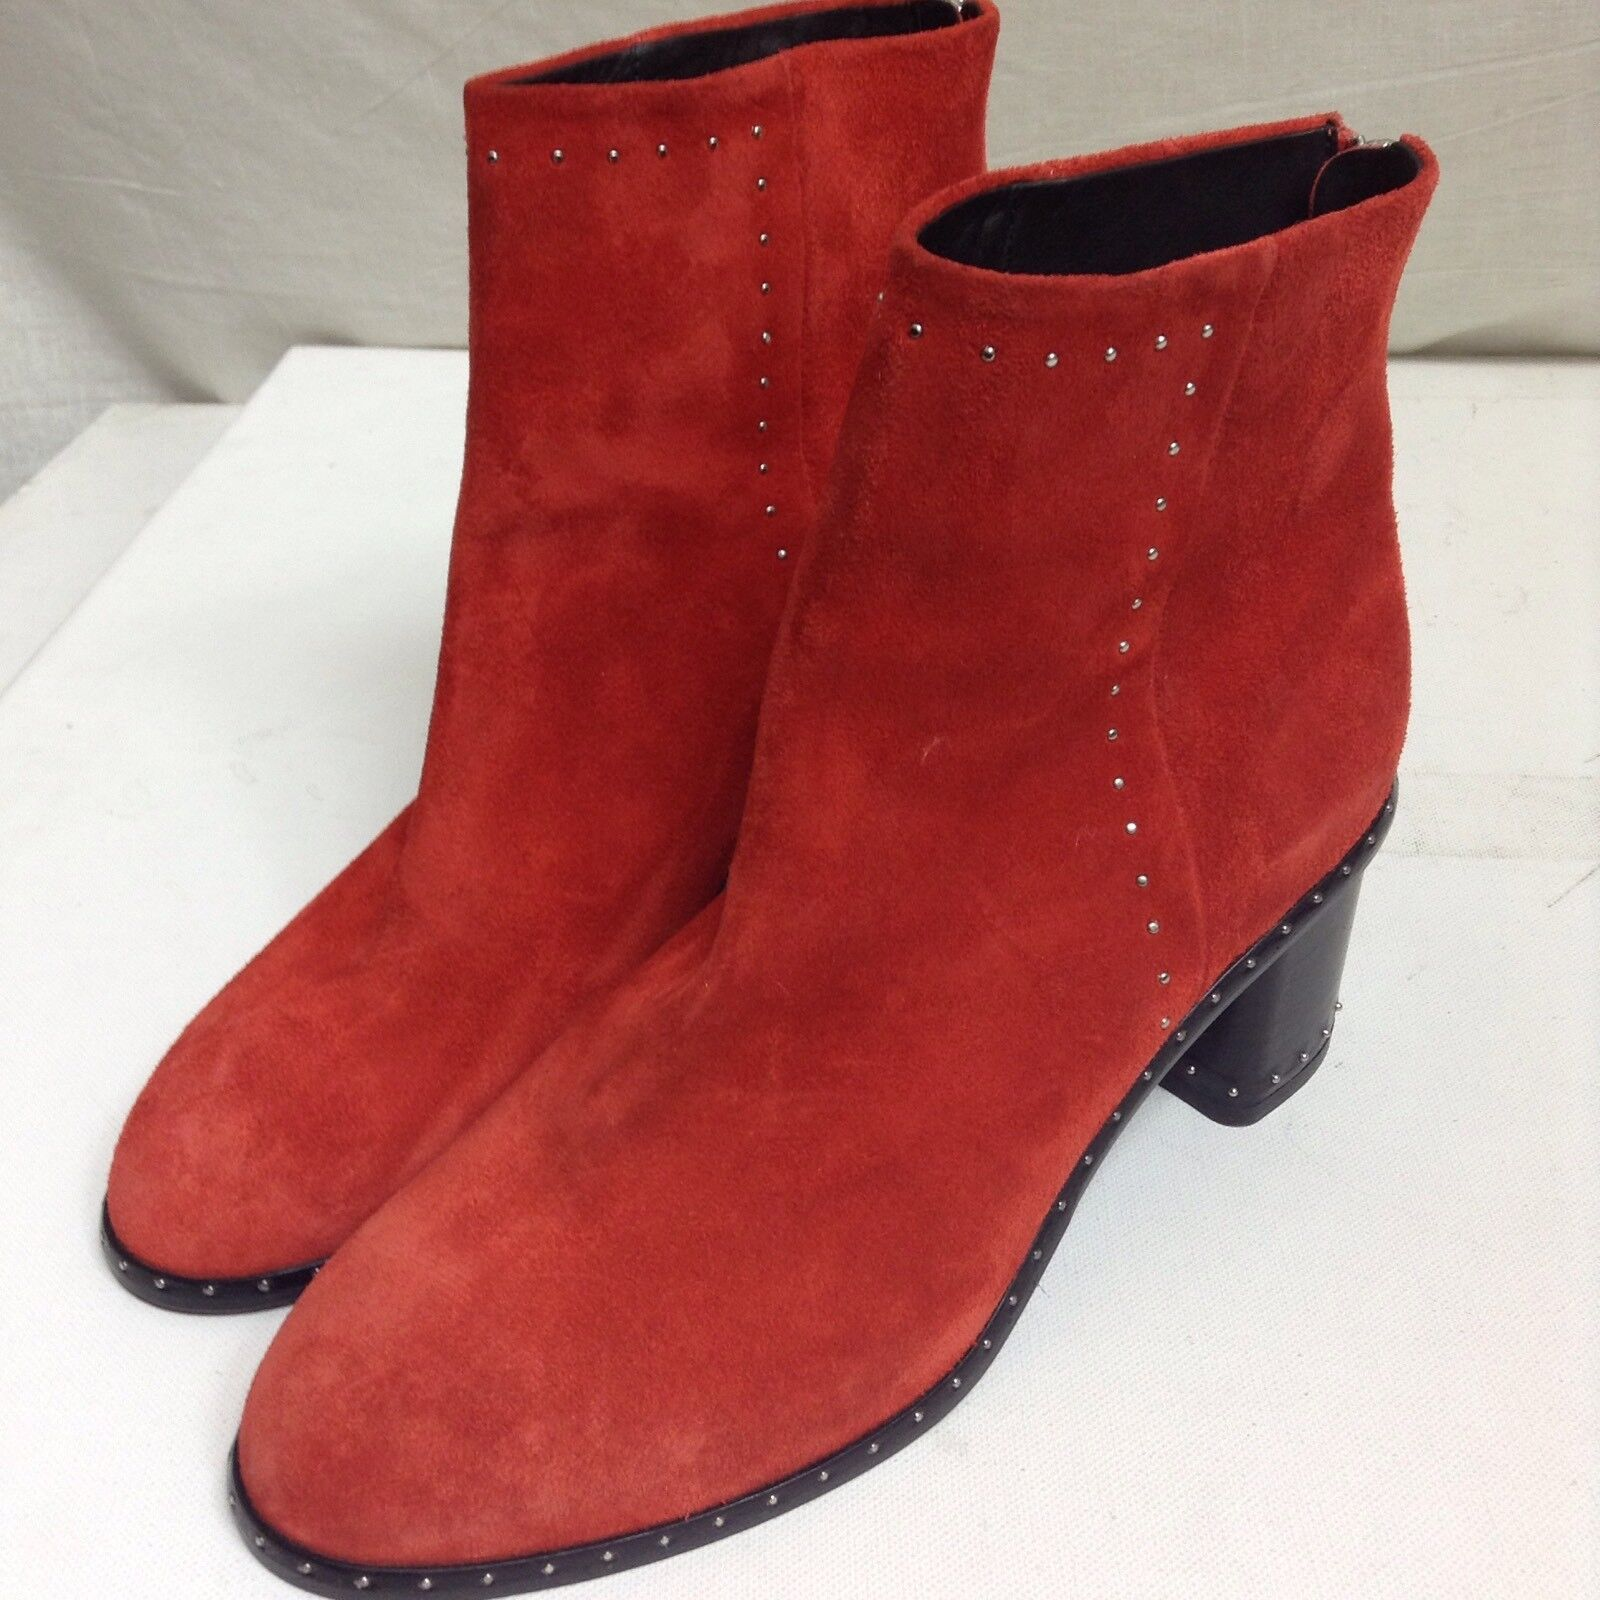 Rag & Bone Nefer Studded Suede Ankle Boots, Red 36 US 6